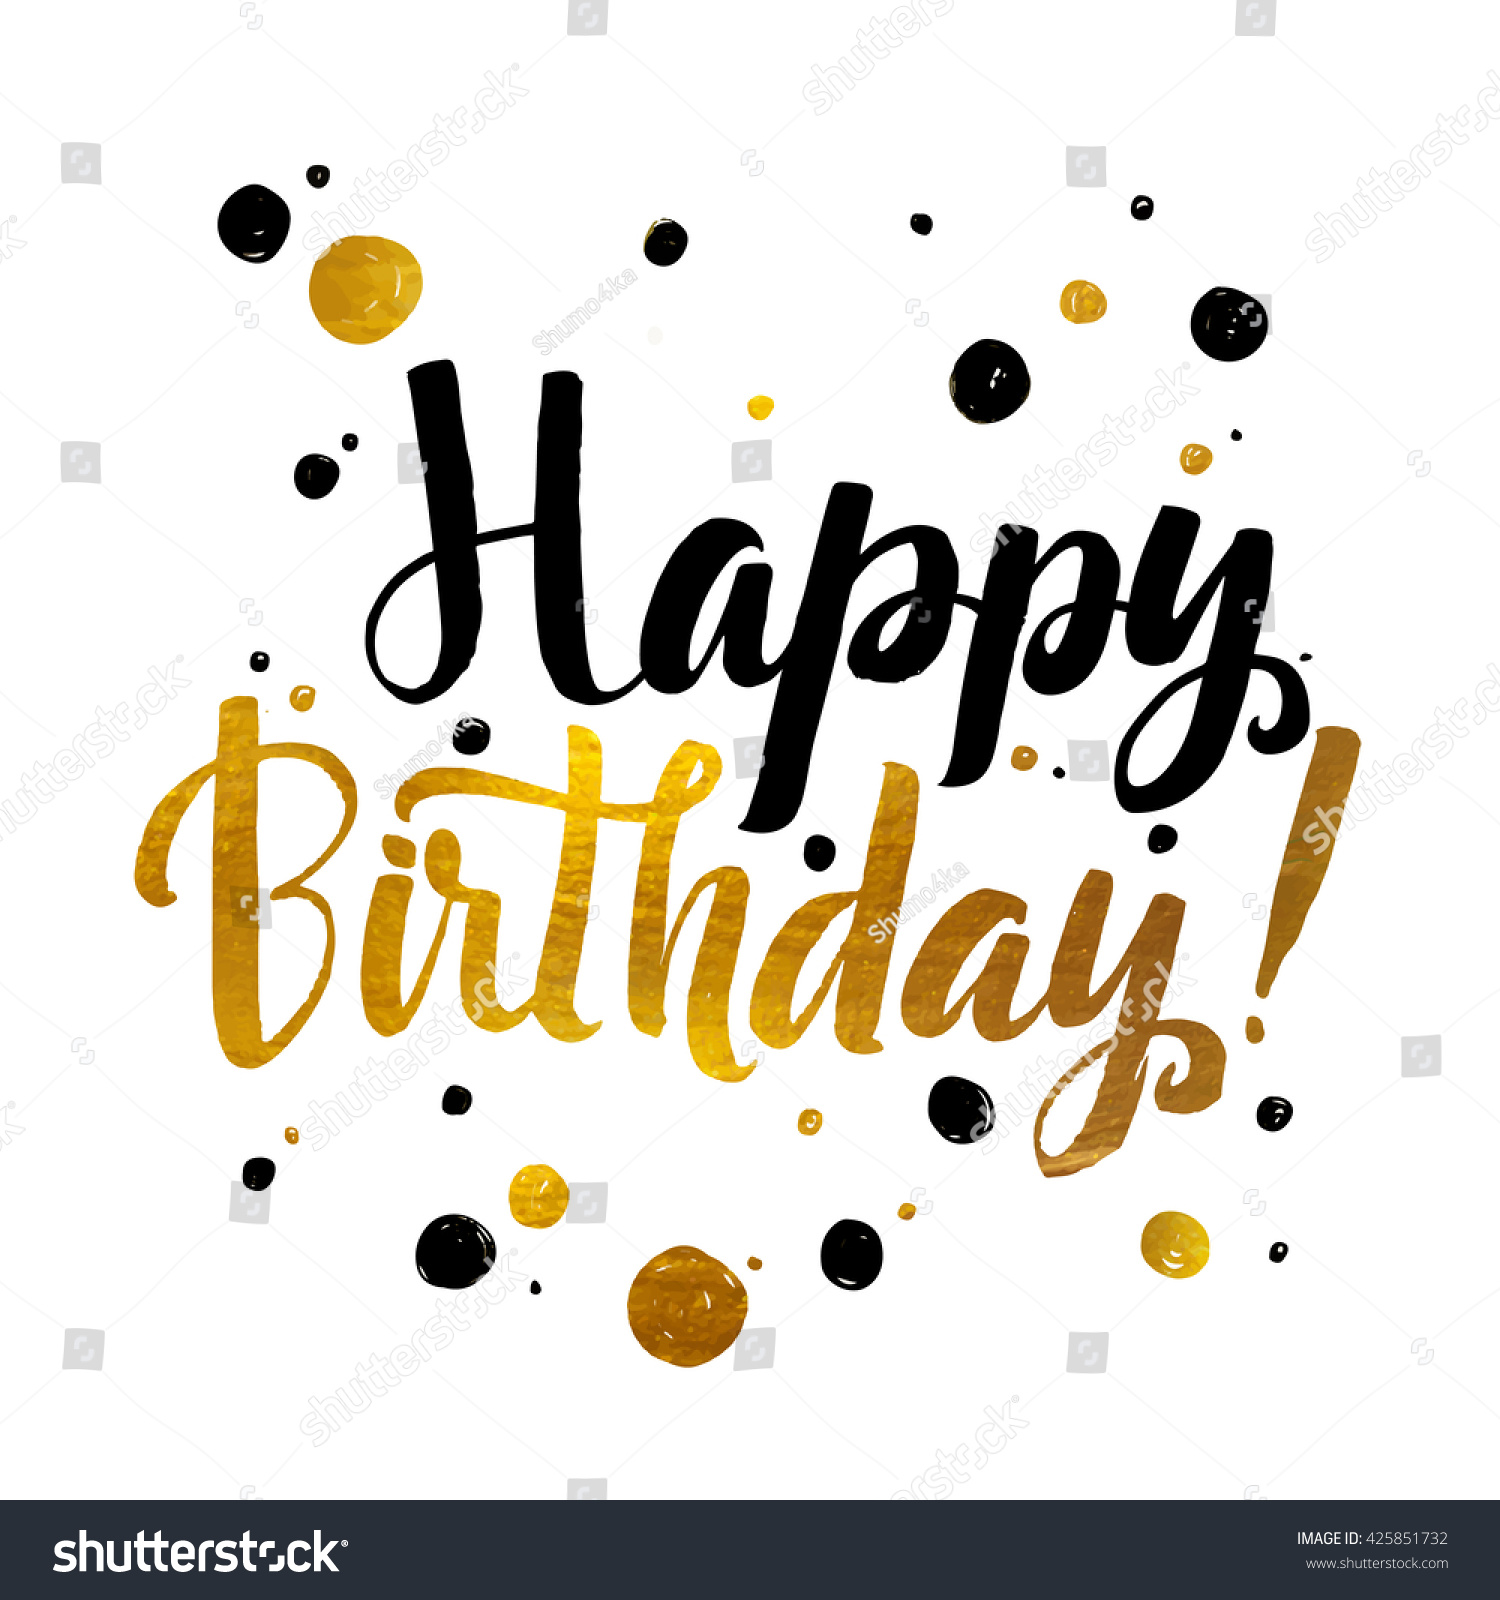 graphic regarding Happy Birthday Lettering Printables referred to as Joyful Birthday Gold Foil Calligraphic Information Inventory Vector